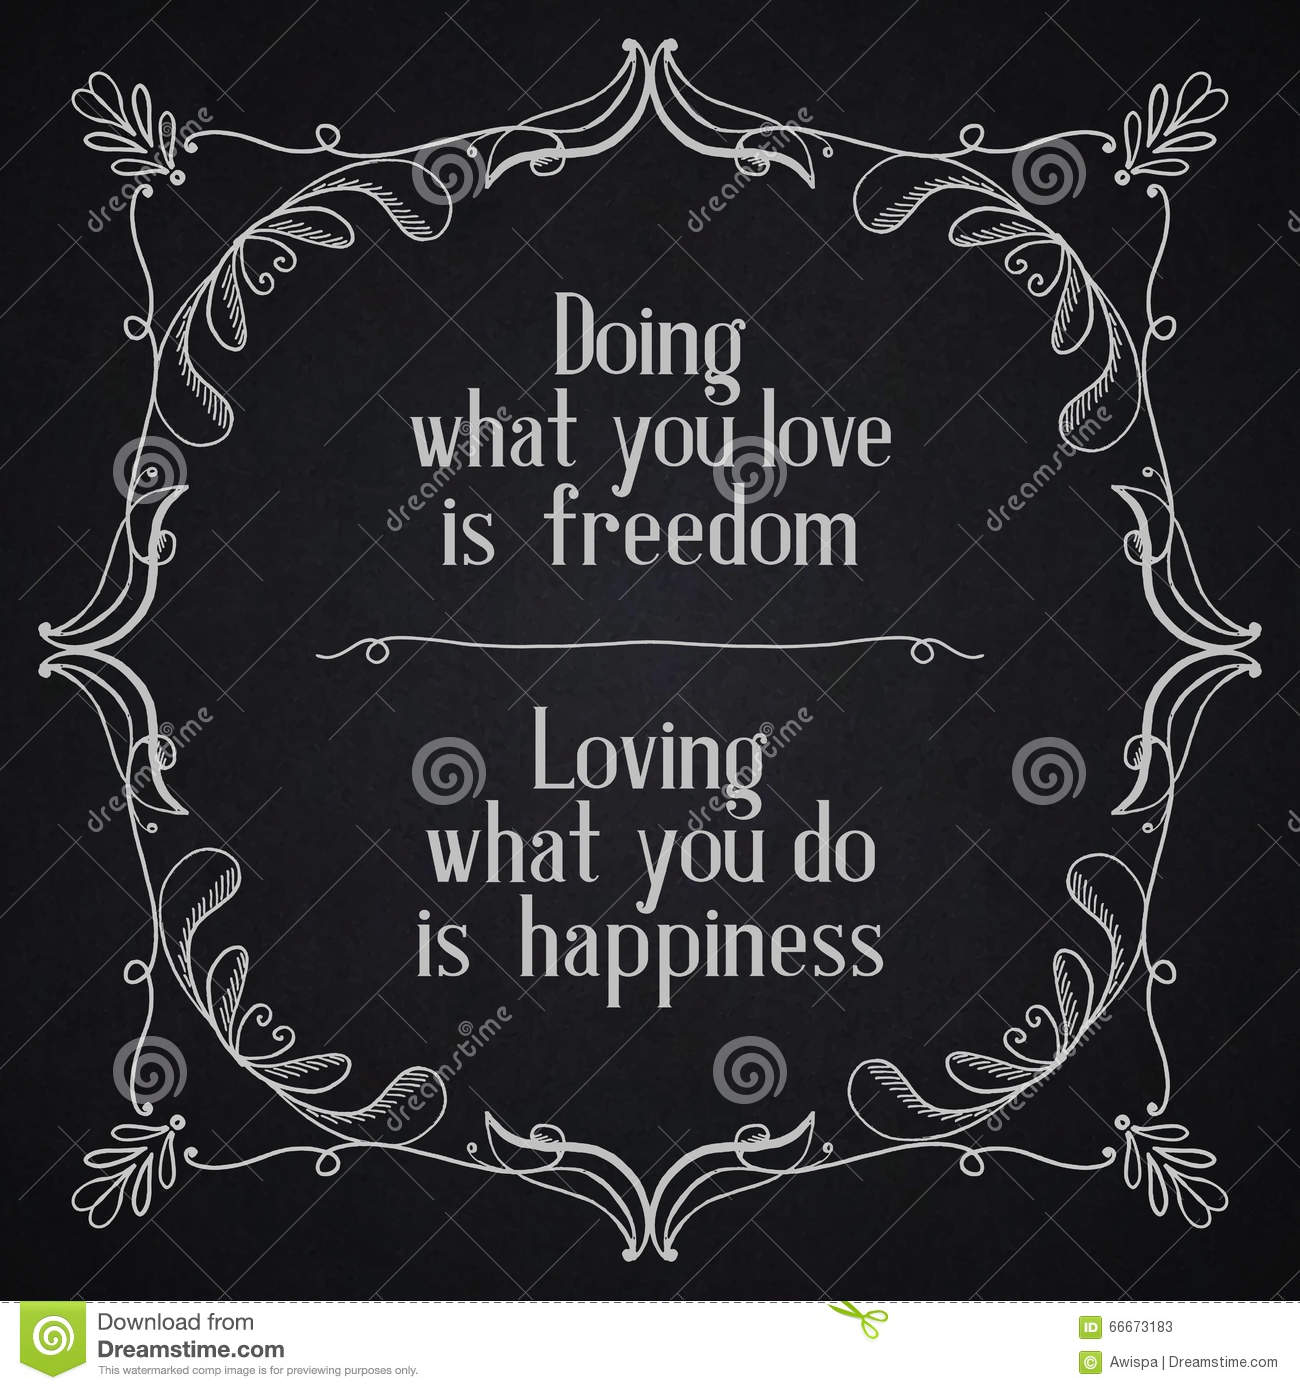 Quotes About Loving What You Do Quote Typographical Backgrounddoing What You Love Is Freedom